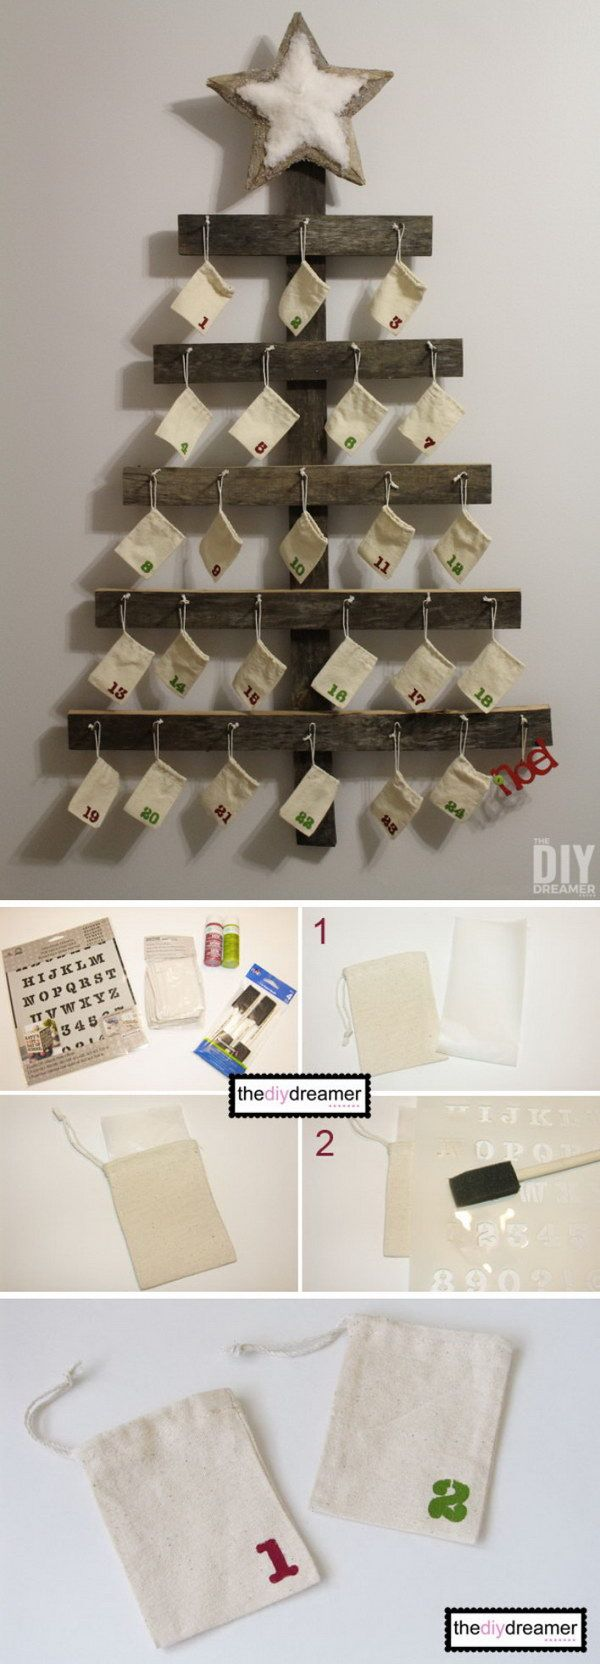 Wall Mounted Advent Calendar.Possible new product for Roz Custom Creations